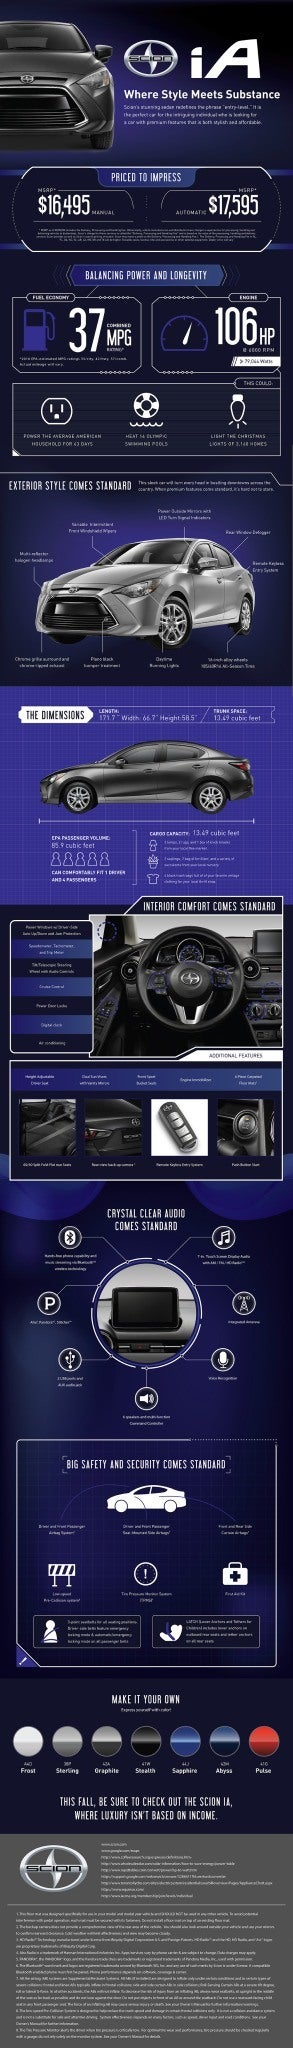 Scion_iA_infographic